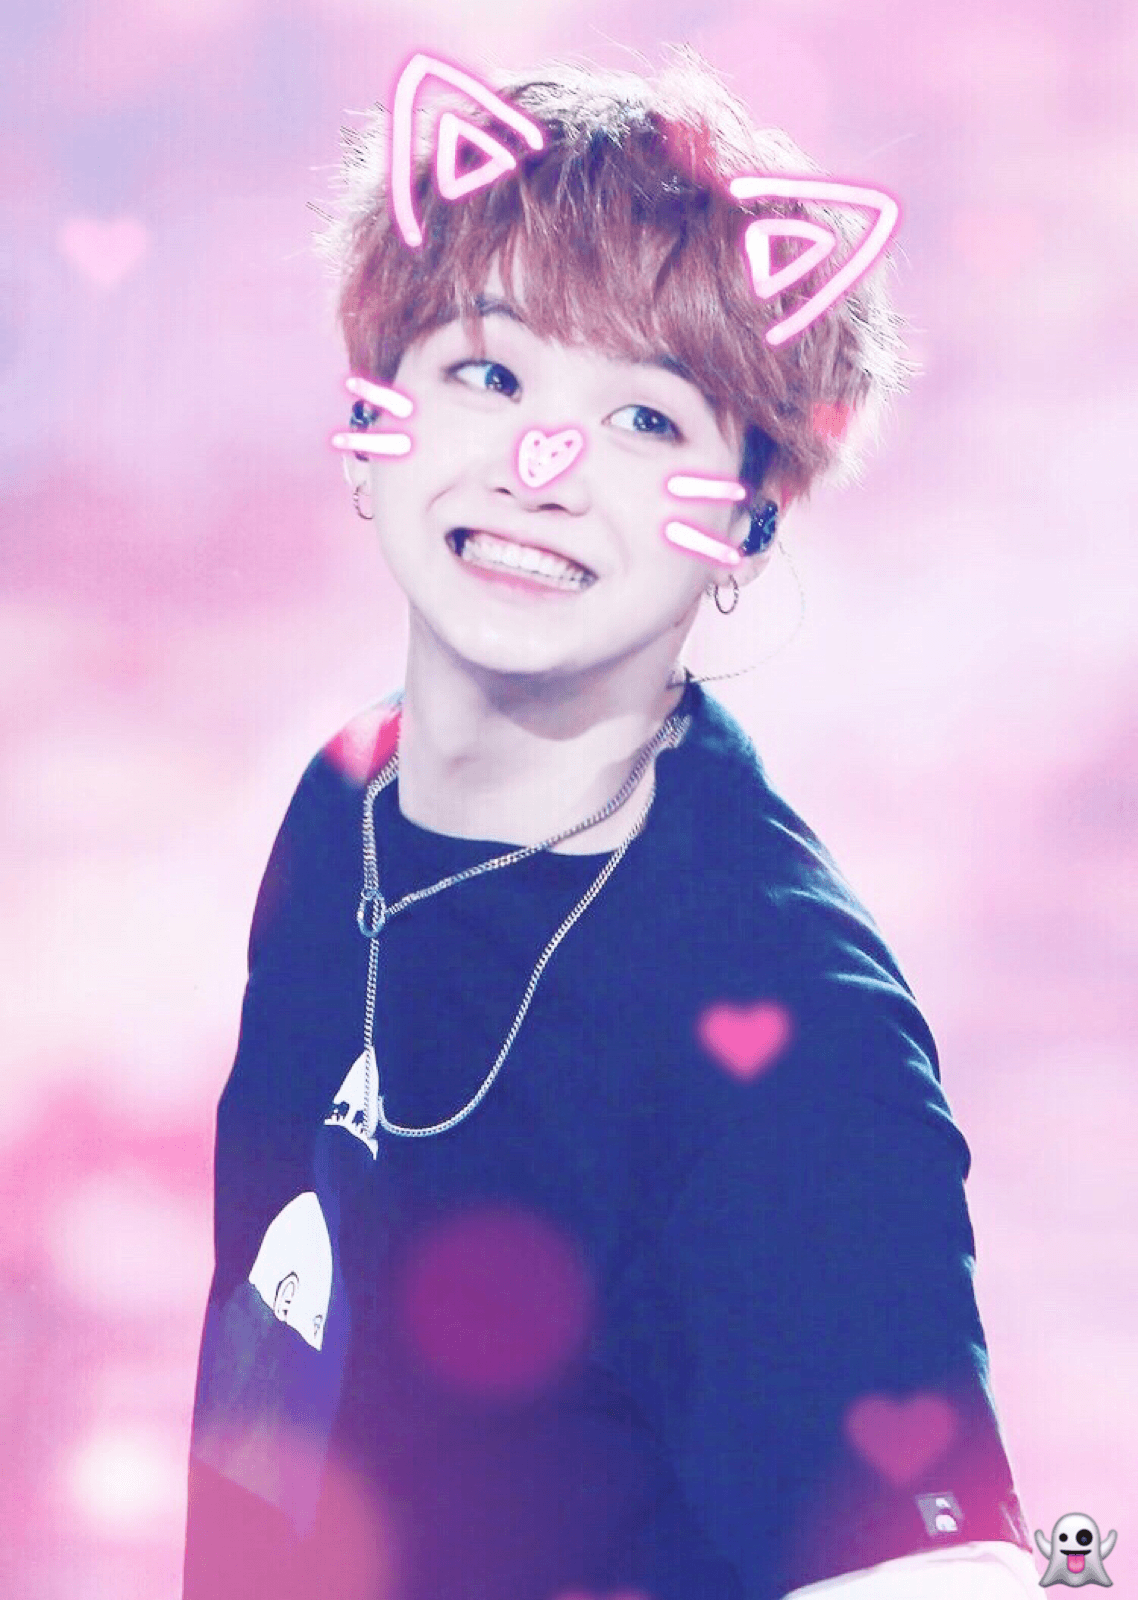 Bts Suga Cute Wallpapers Top Free Bts Suga Cute Backgrounds